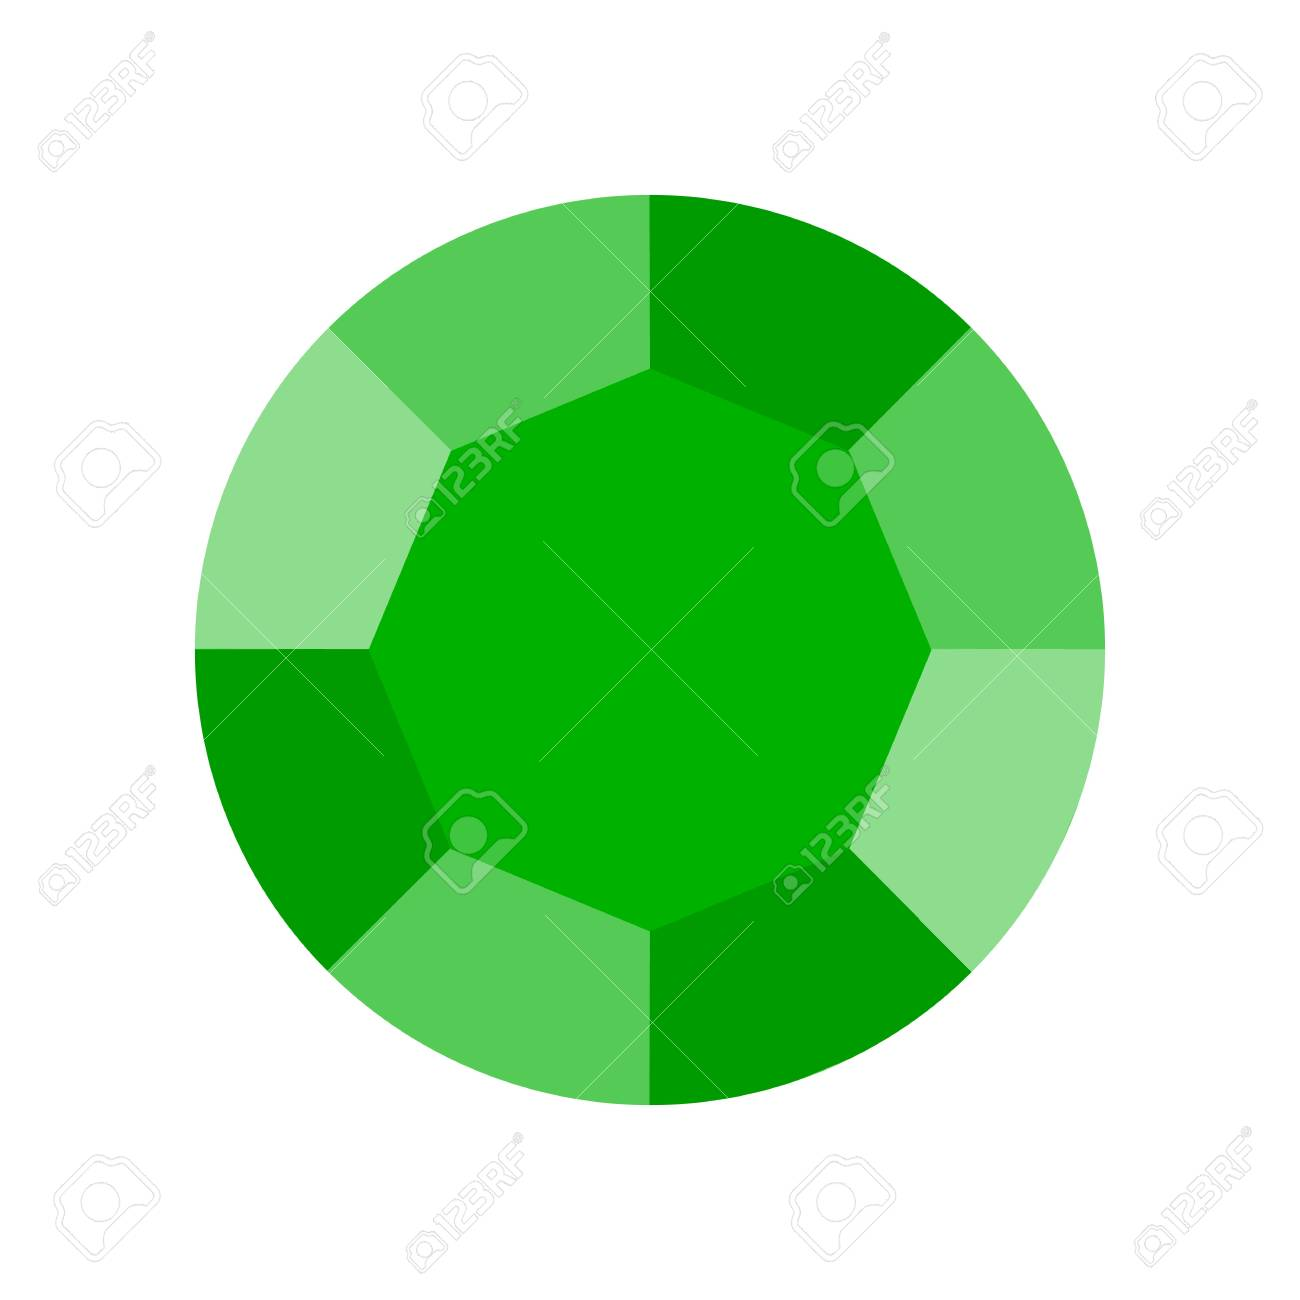 green emerald, jewelry related icon, flat design. - 112324458